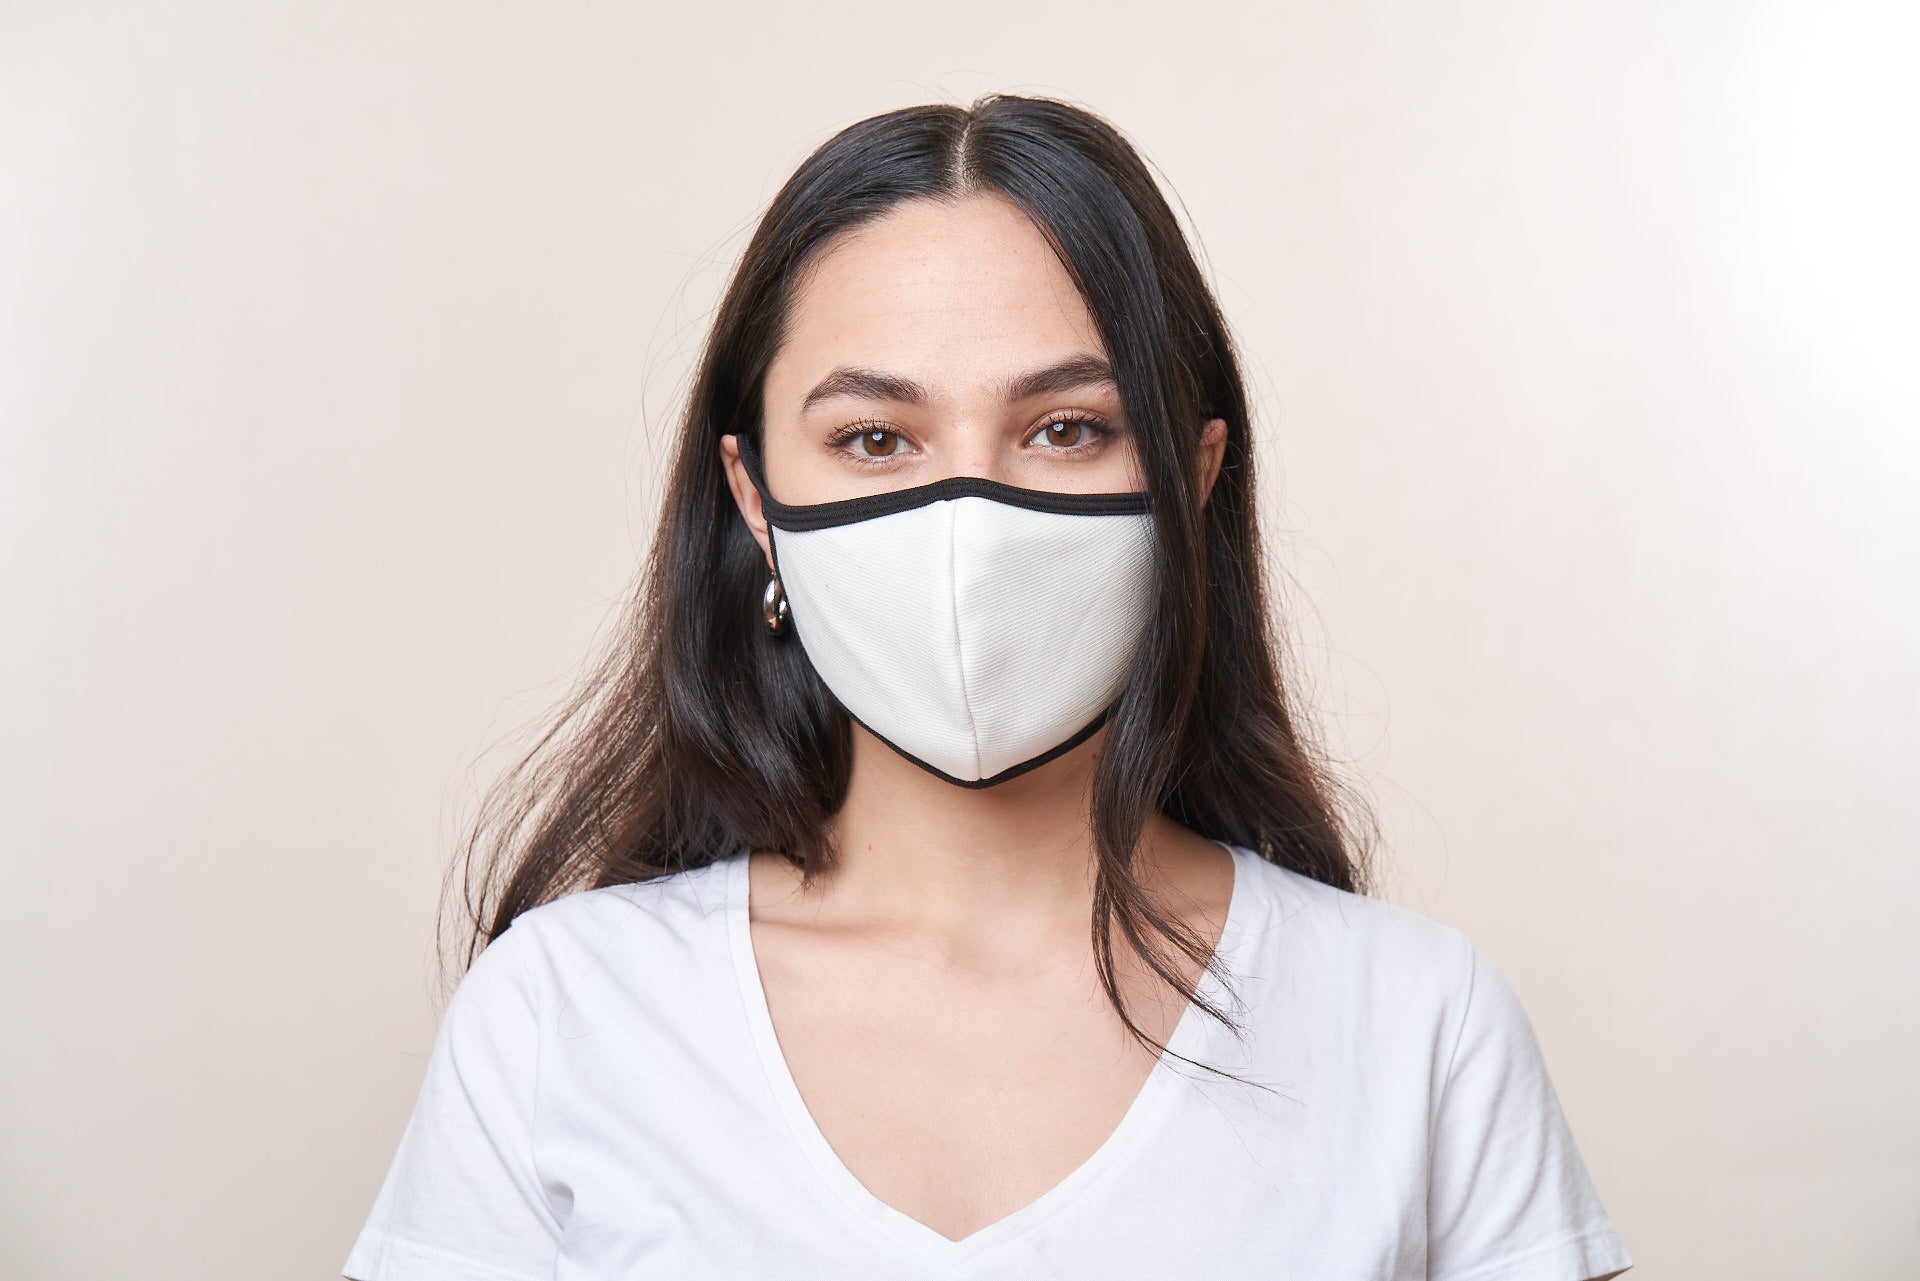 Woman wearing a white face mask with black trim.